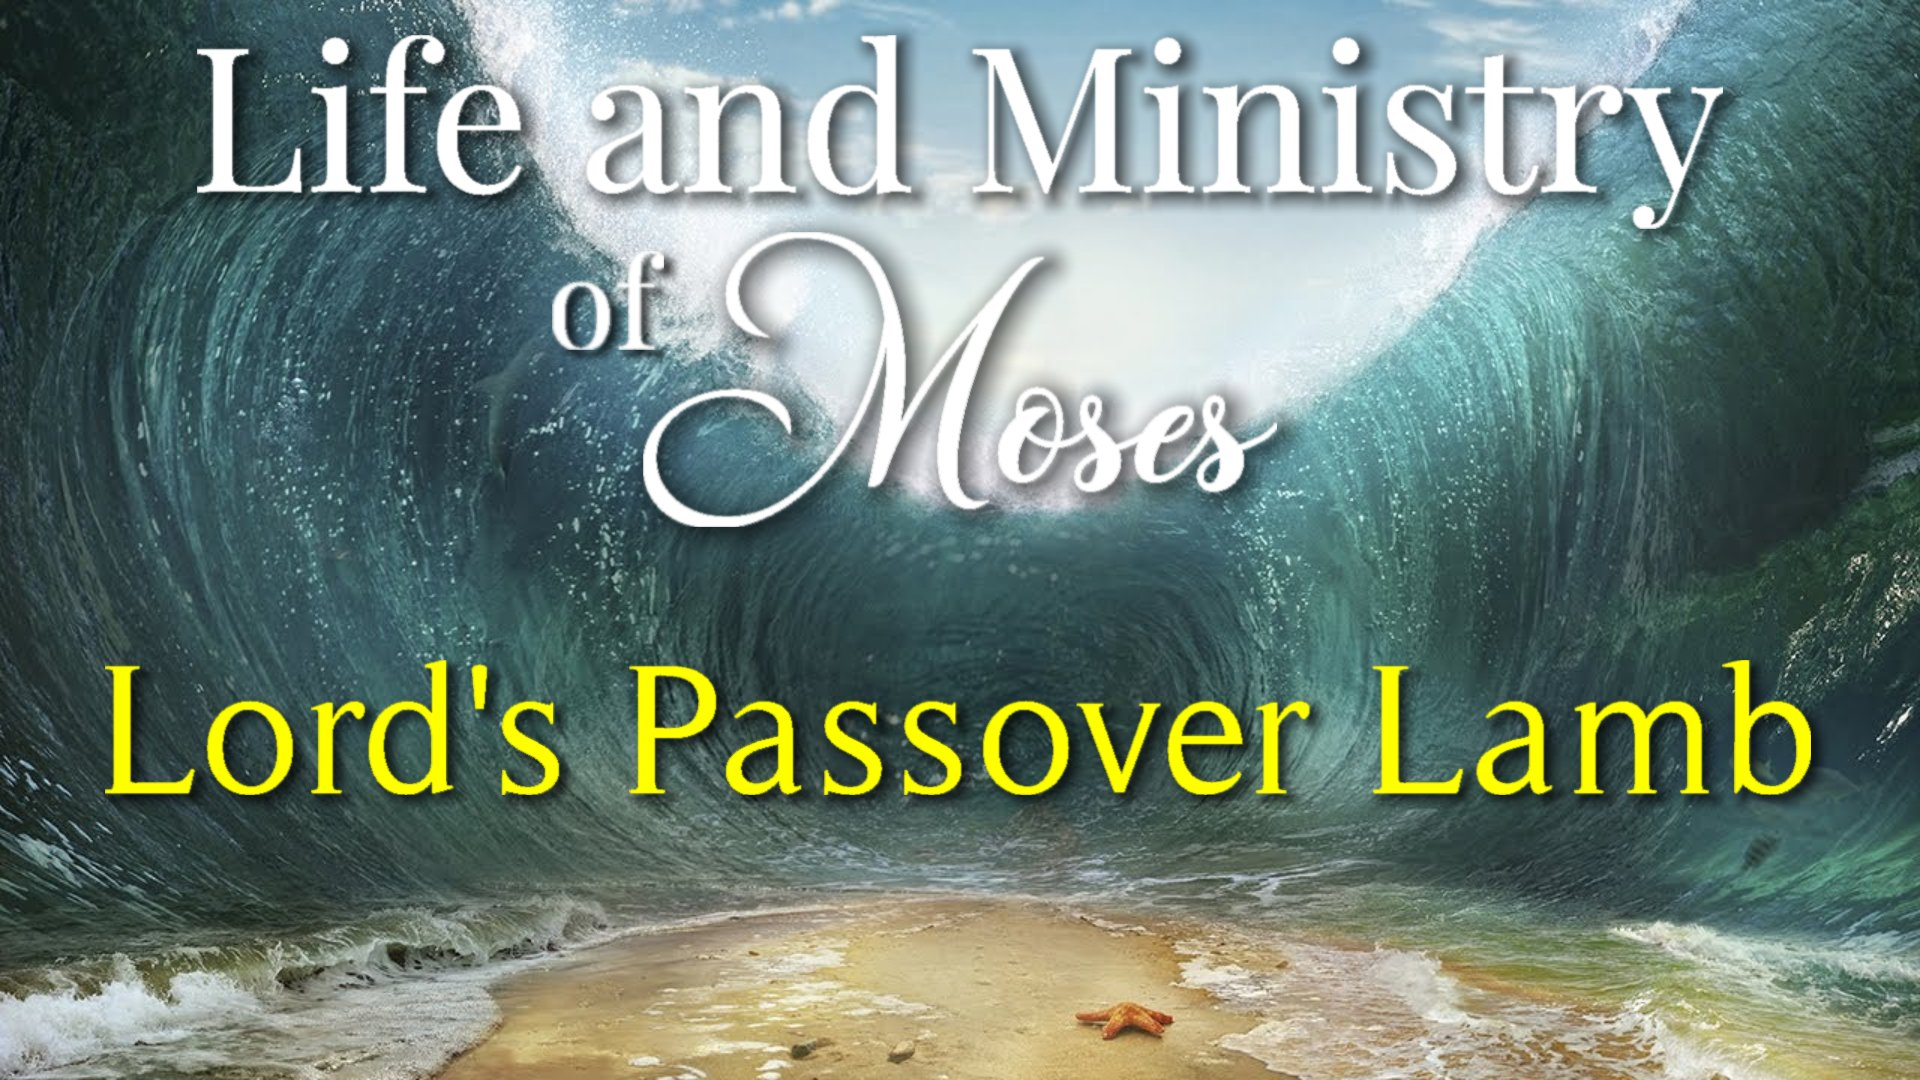 12 Lord's Passover Lamb